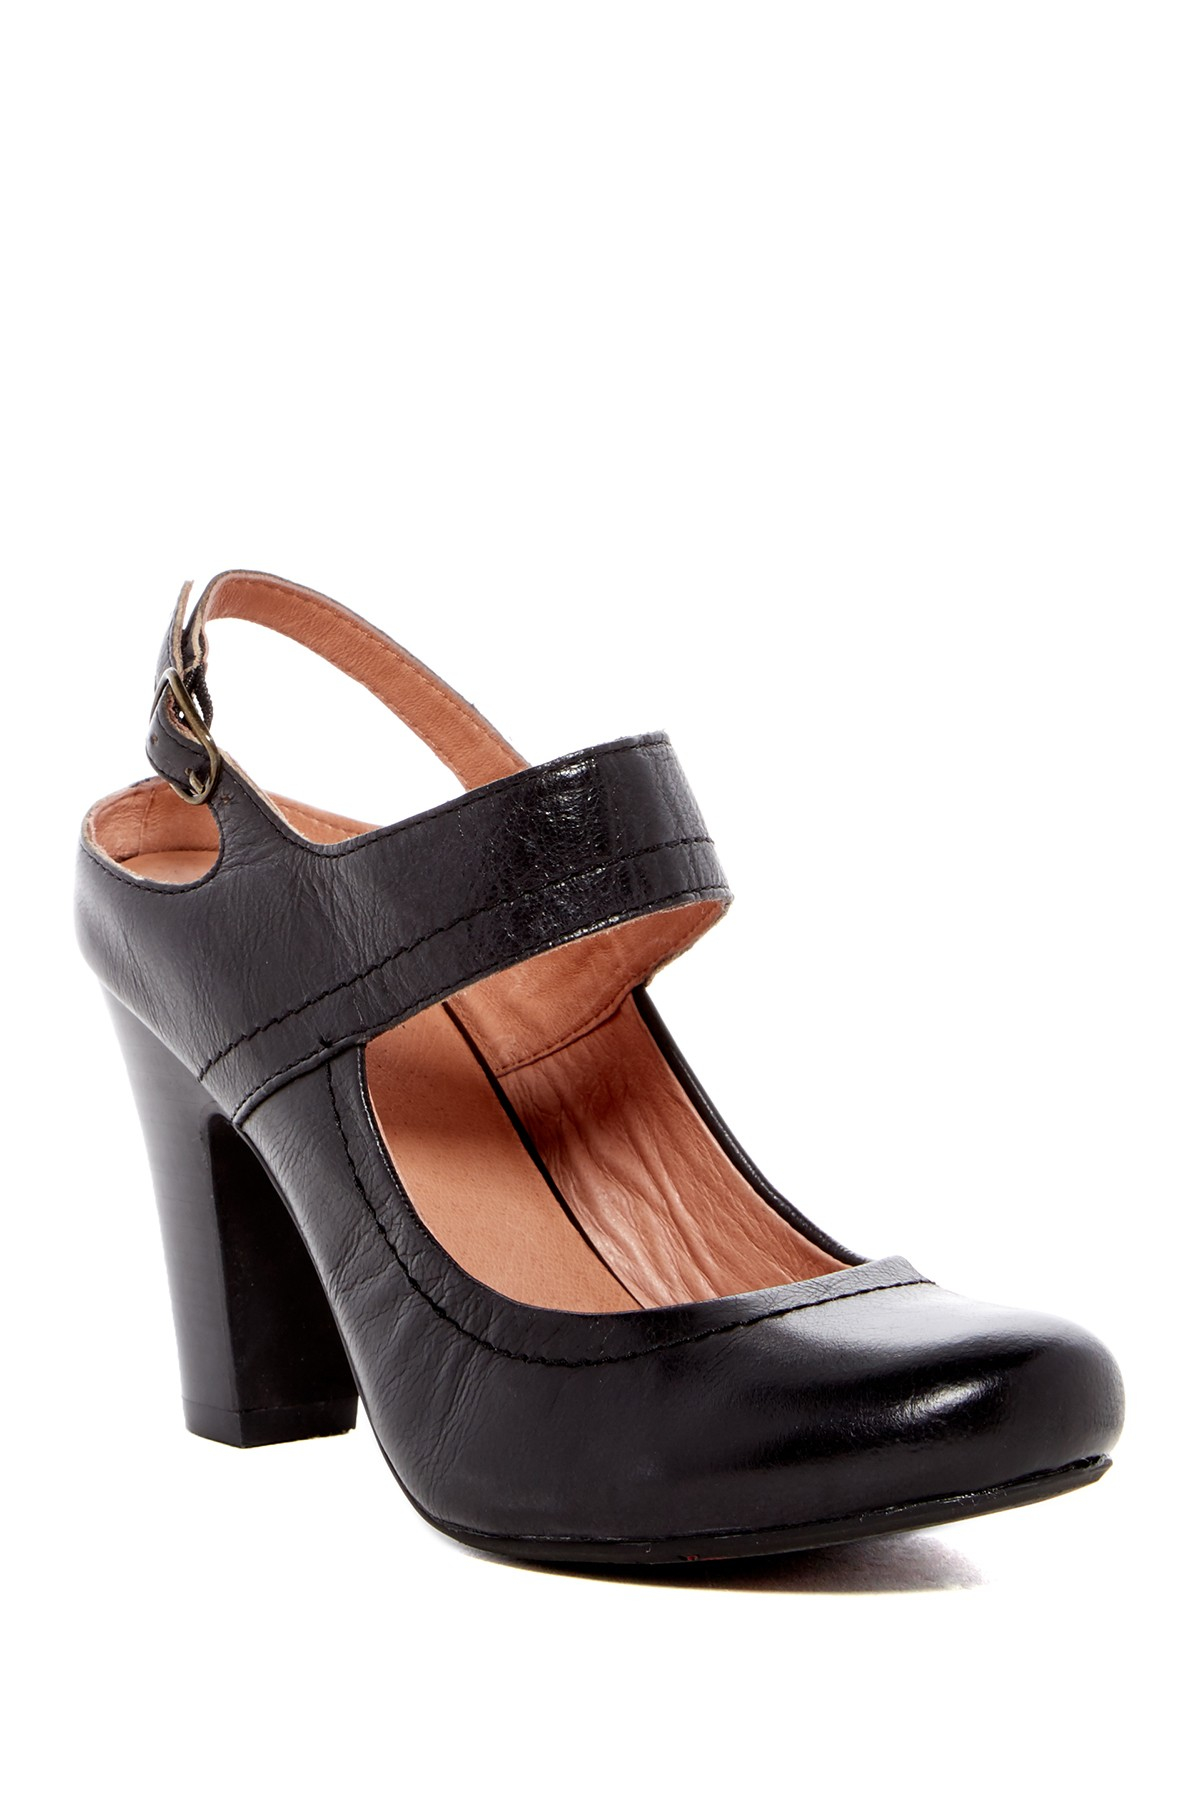 b7adfcc39d0 Gallery. Previously sold at  Nordstrom Rack · Women s Mary Jane Shoes